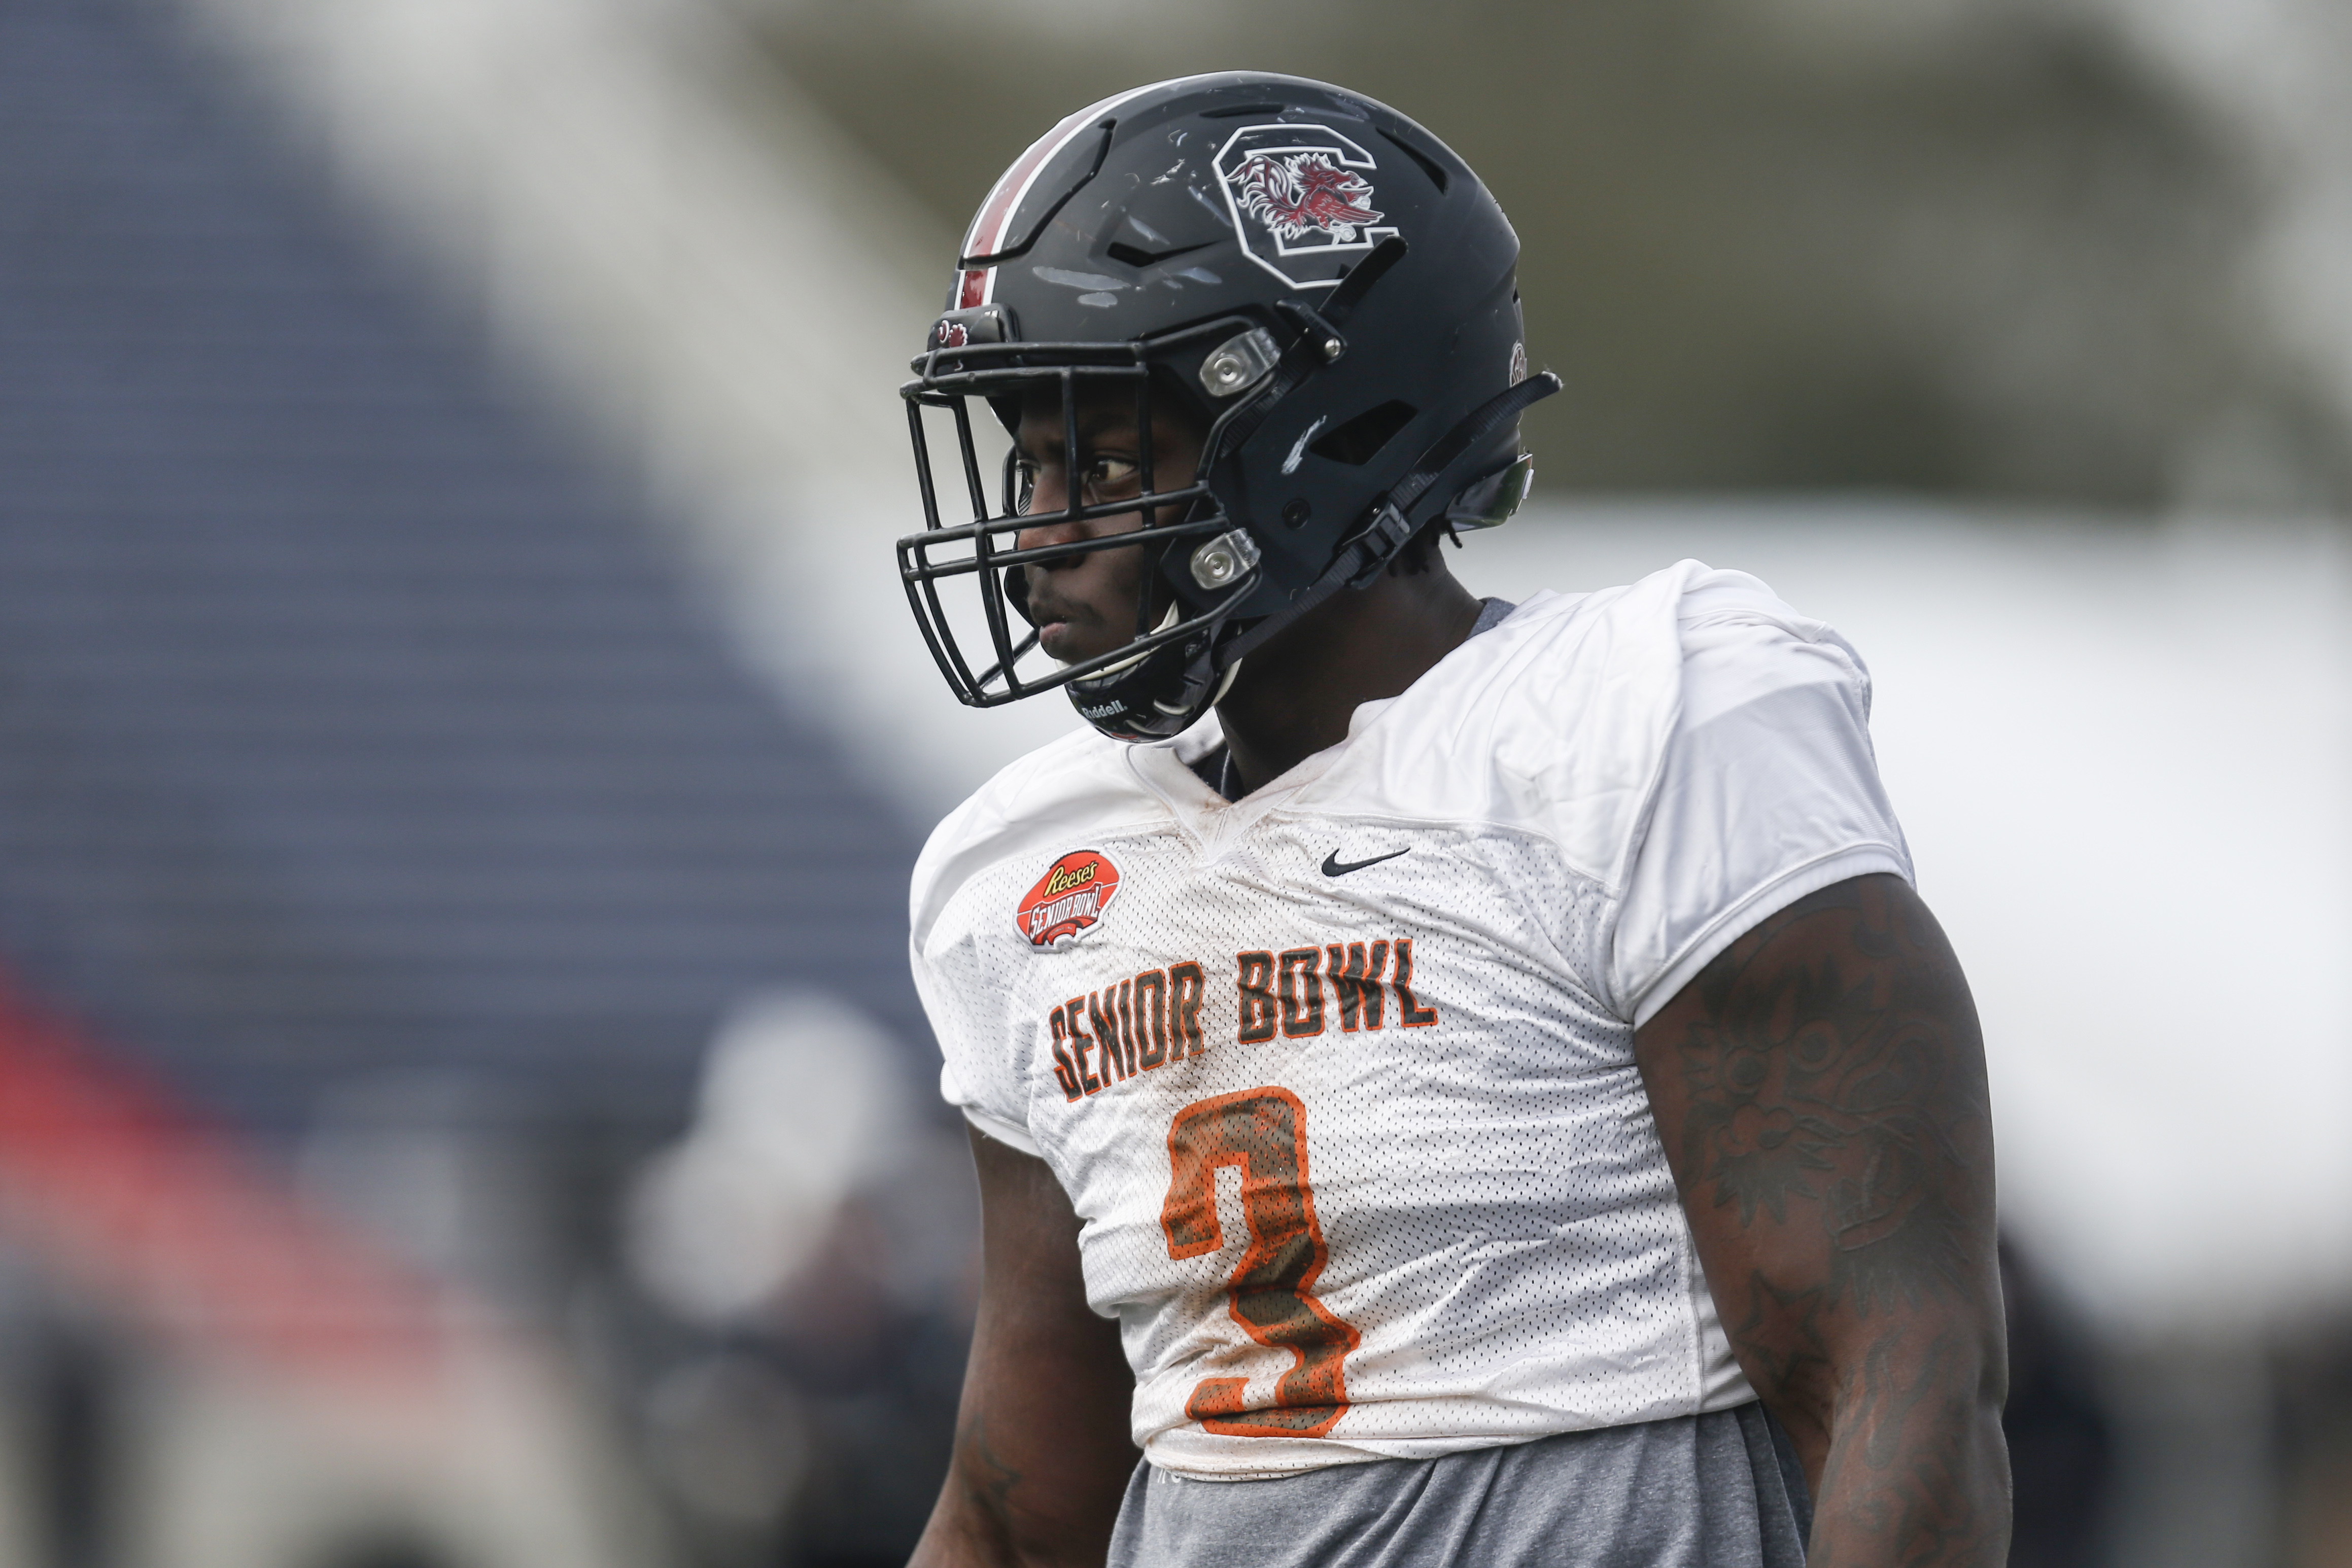 2020 Senior Bowl: 10 Prospects Bucs Should Target